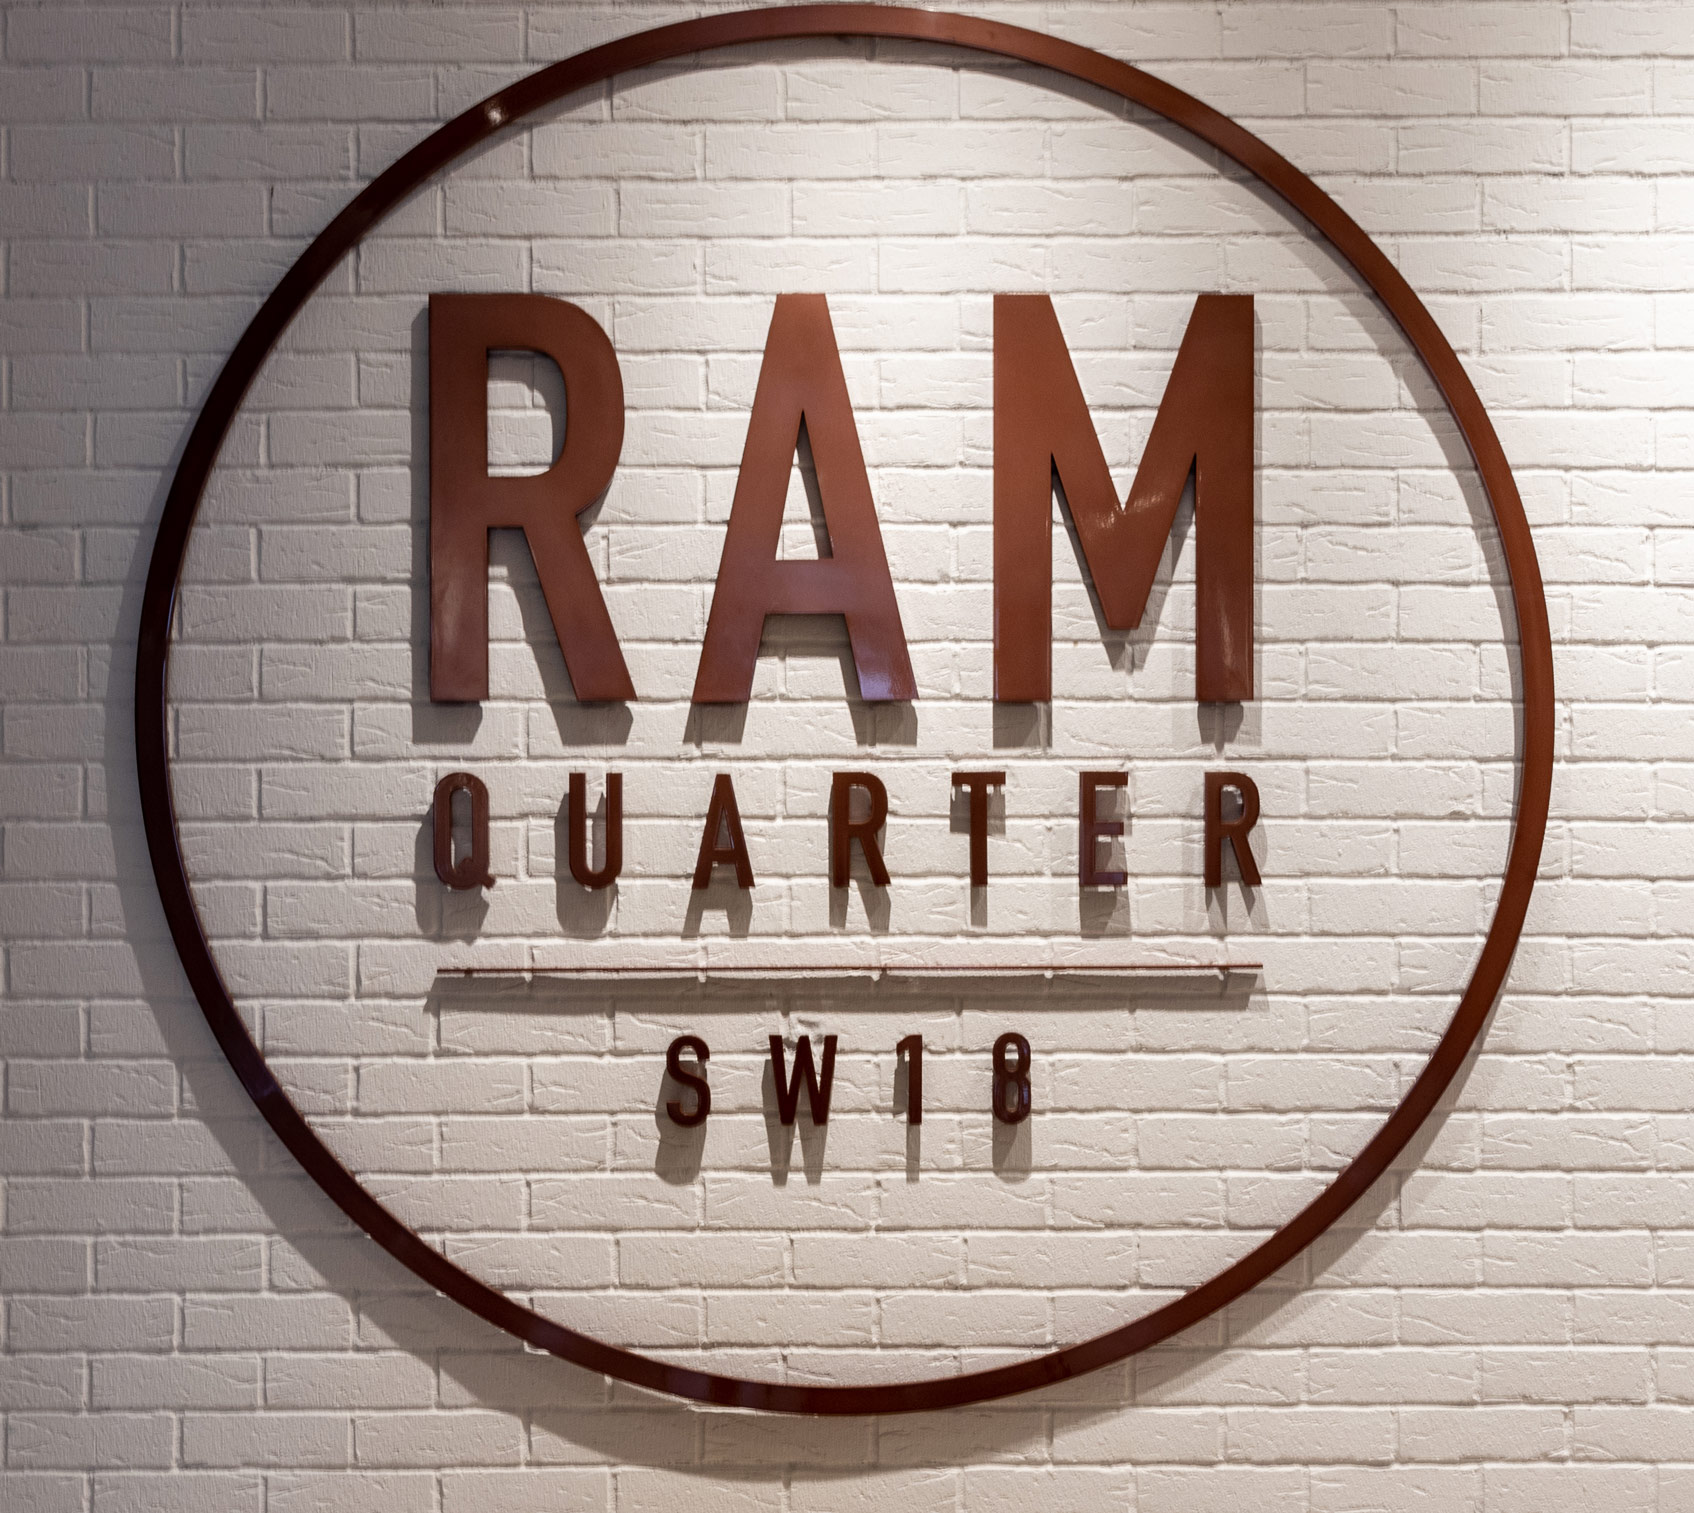 ram quarter electric vehicle chargers